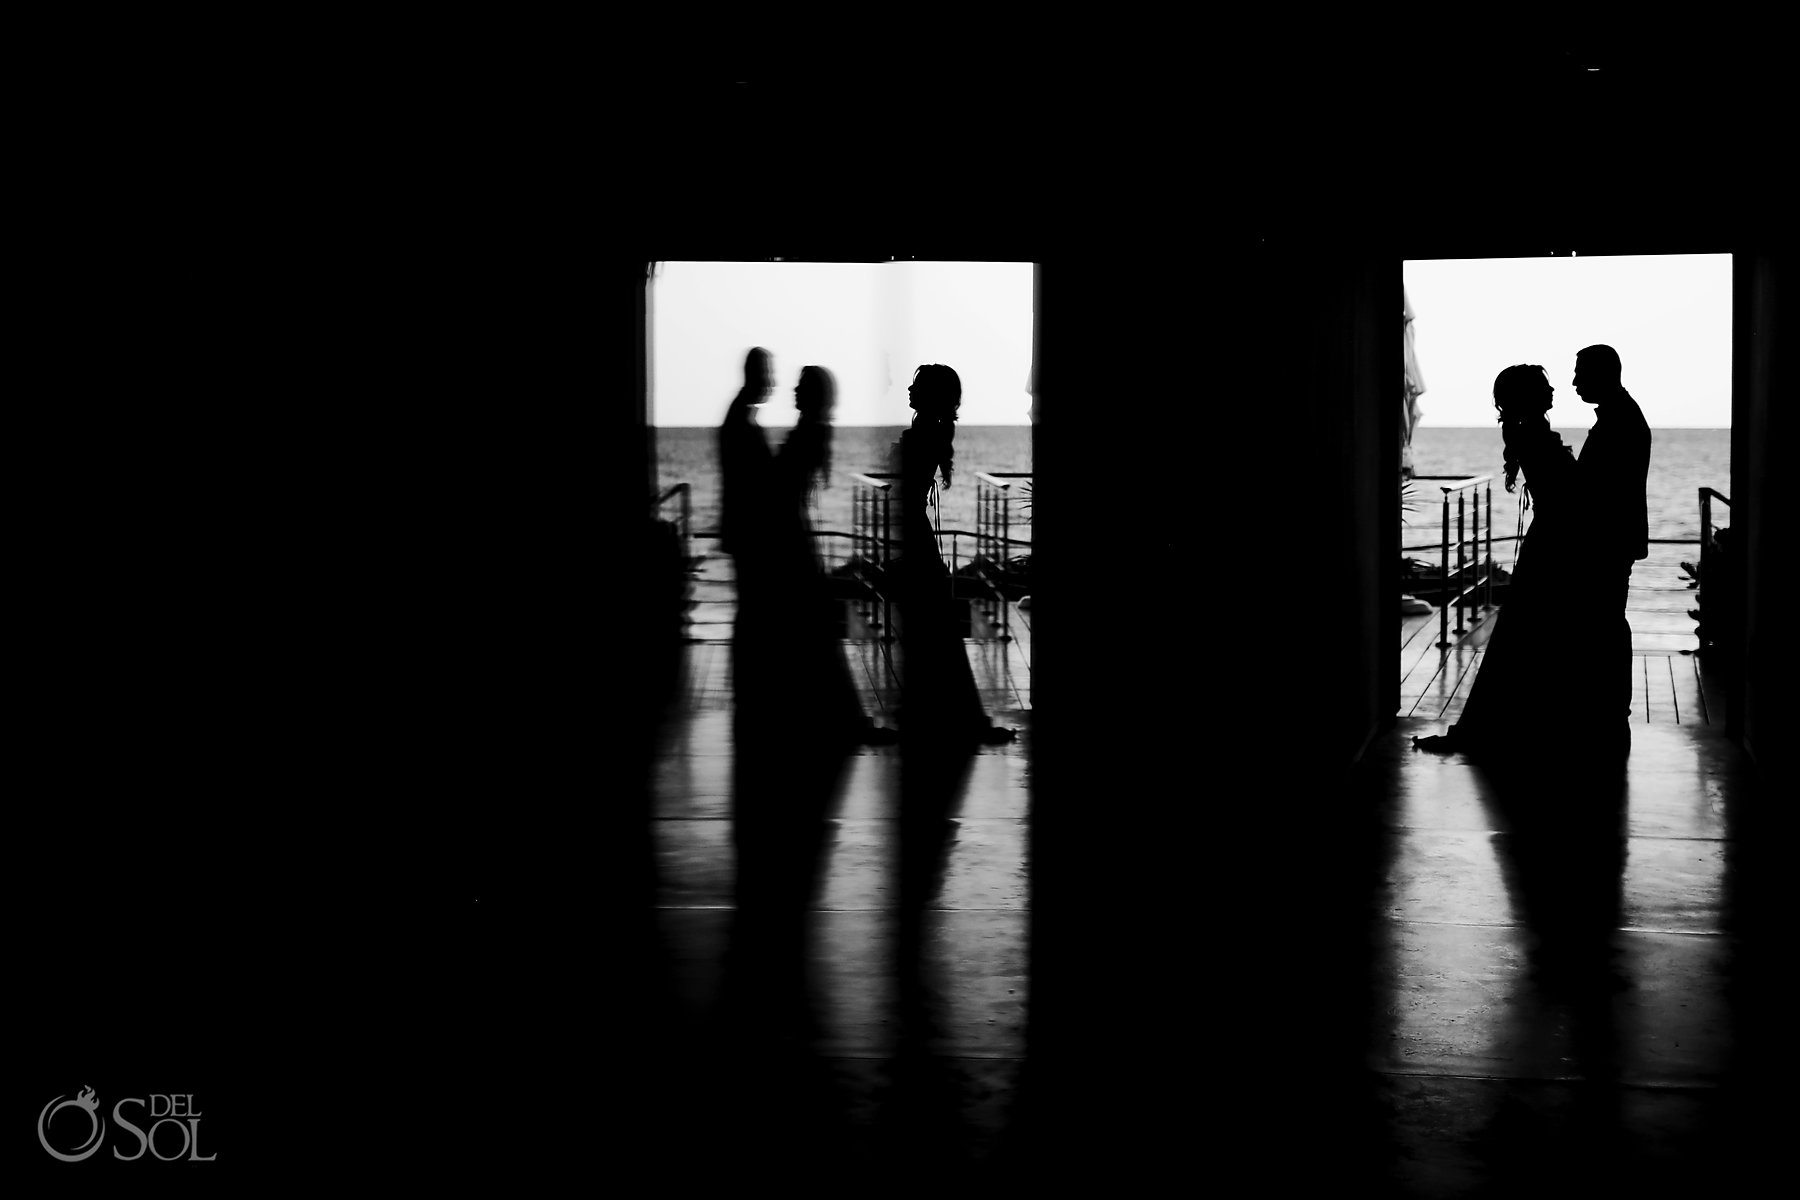 bride and groom silhouette reflection portrait Best elopement locations mexico